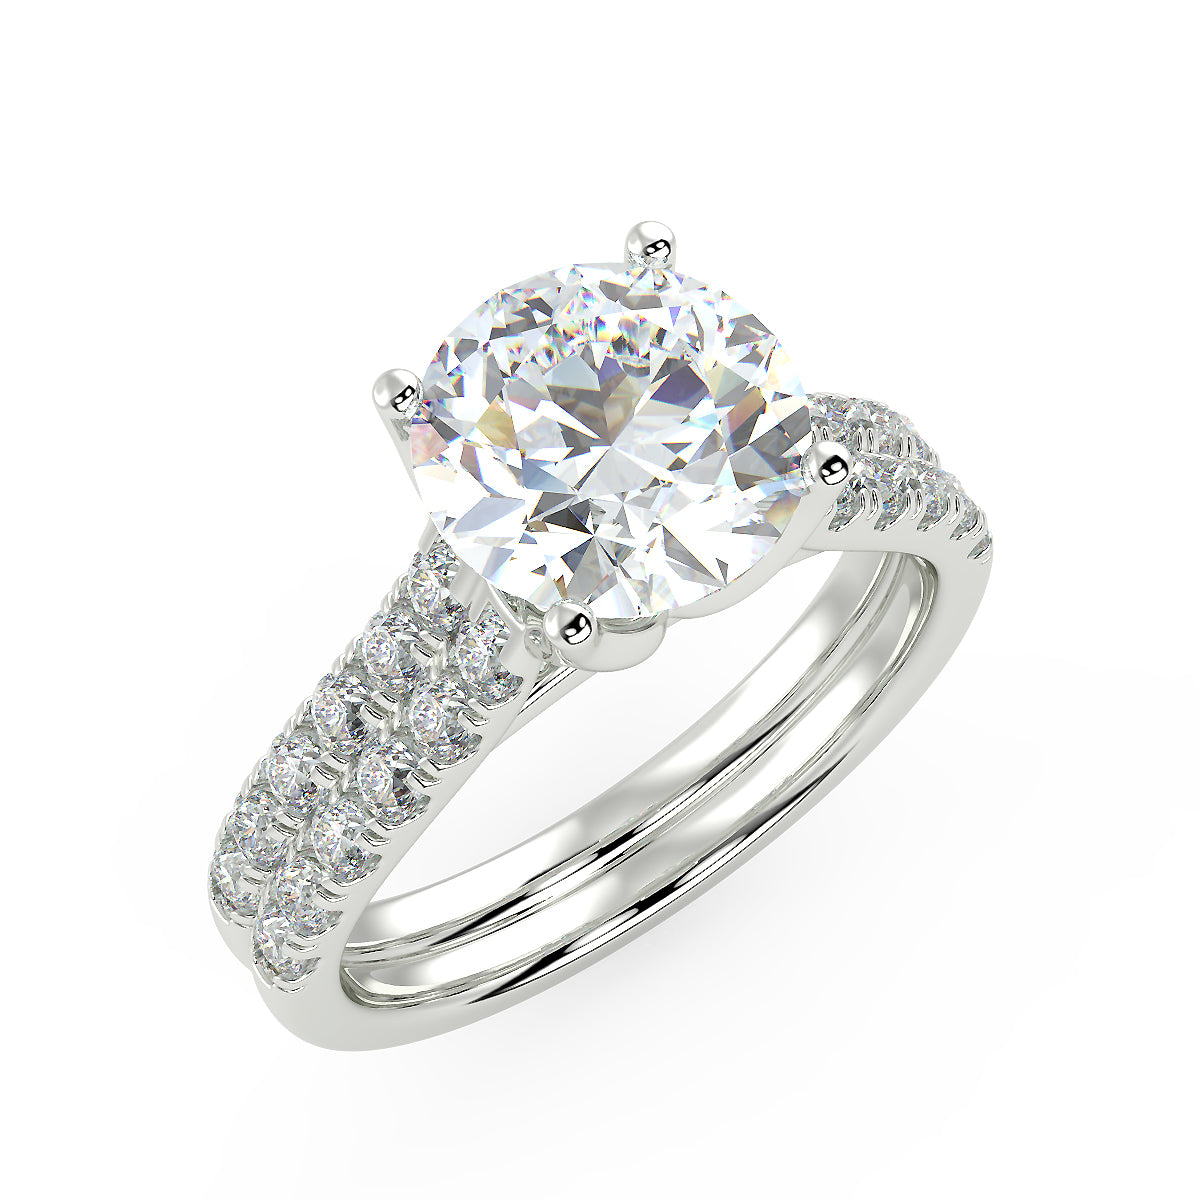 Bright Altair Engagement Ring in White Gold